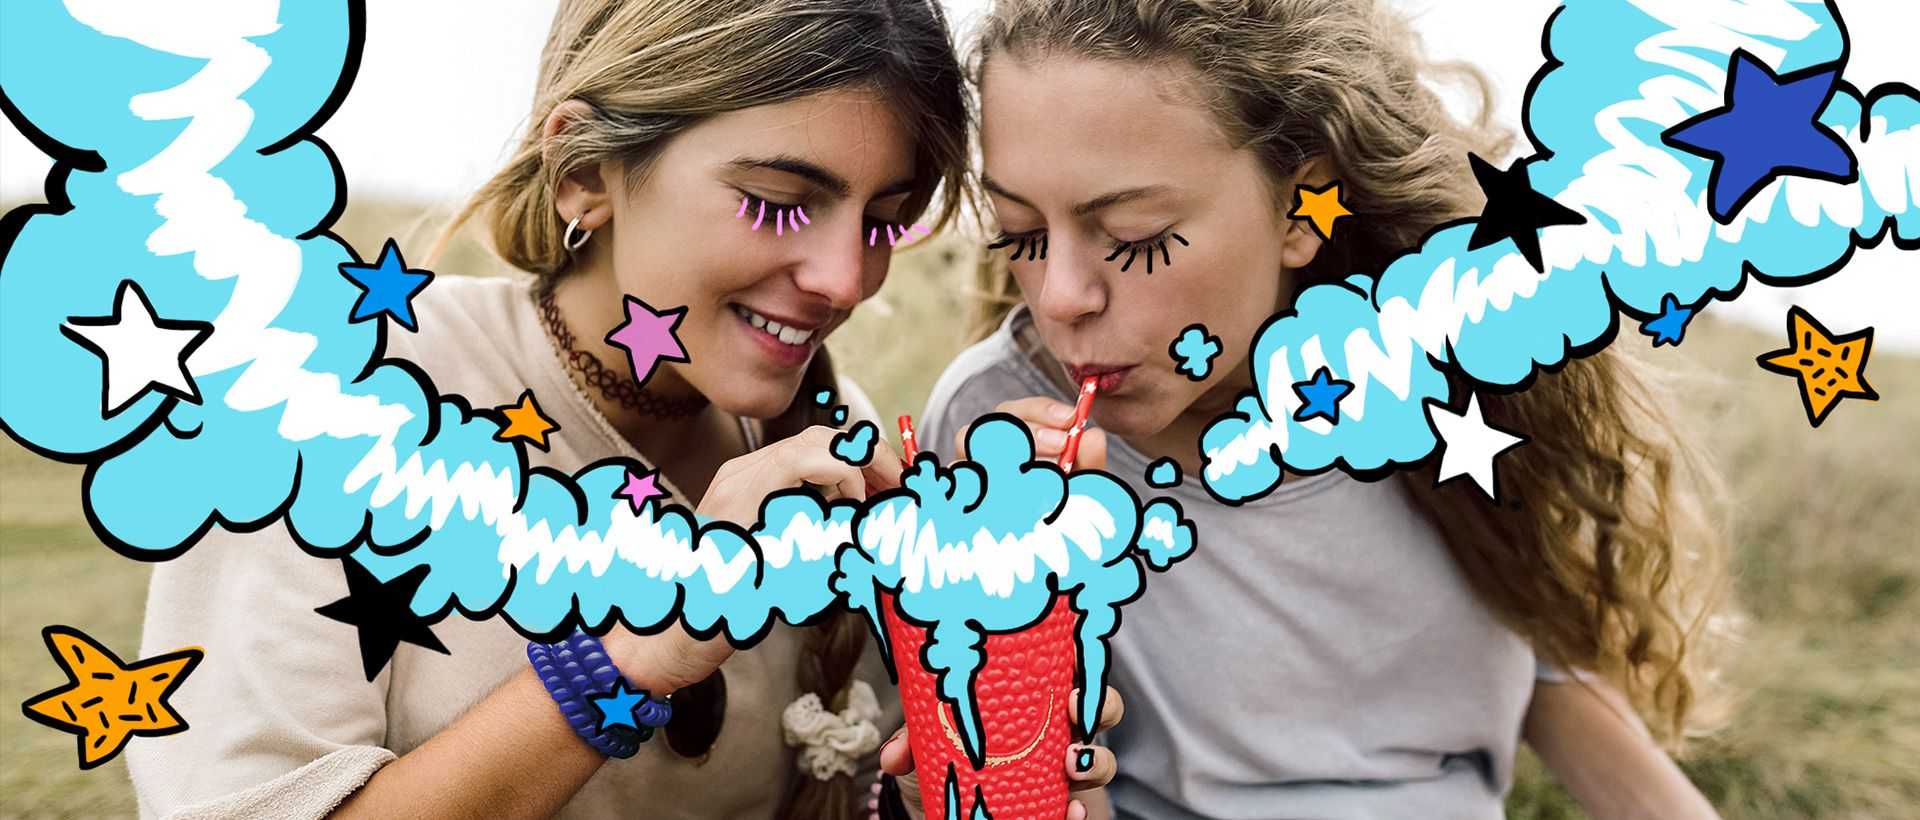 The illustration image of two girls by using samsung note app.